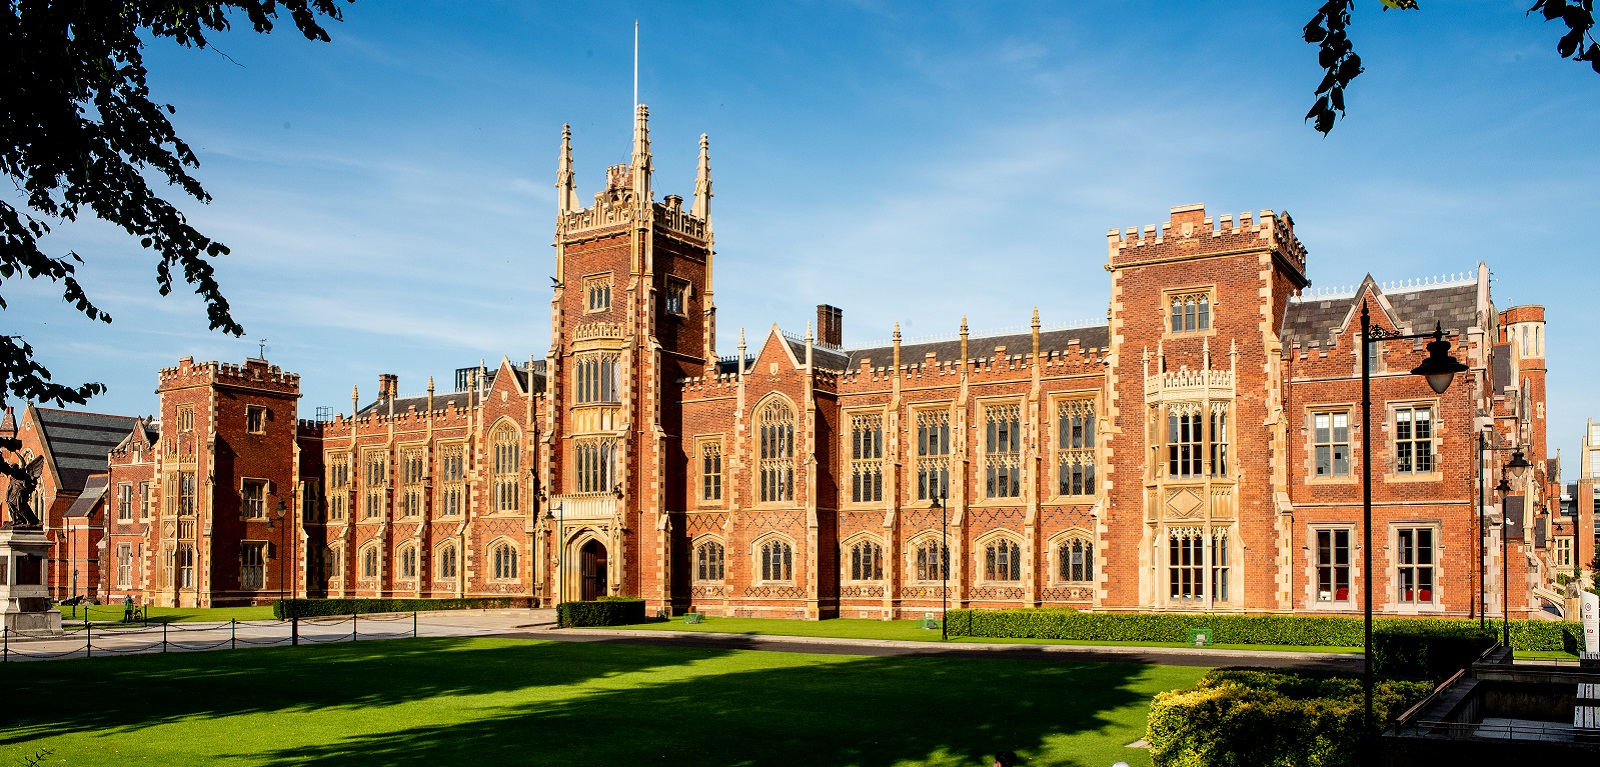 Queen's University Belfast Lanyon Building façade in bright sunshine